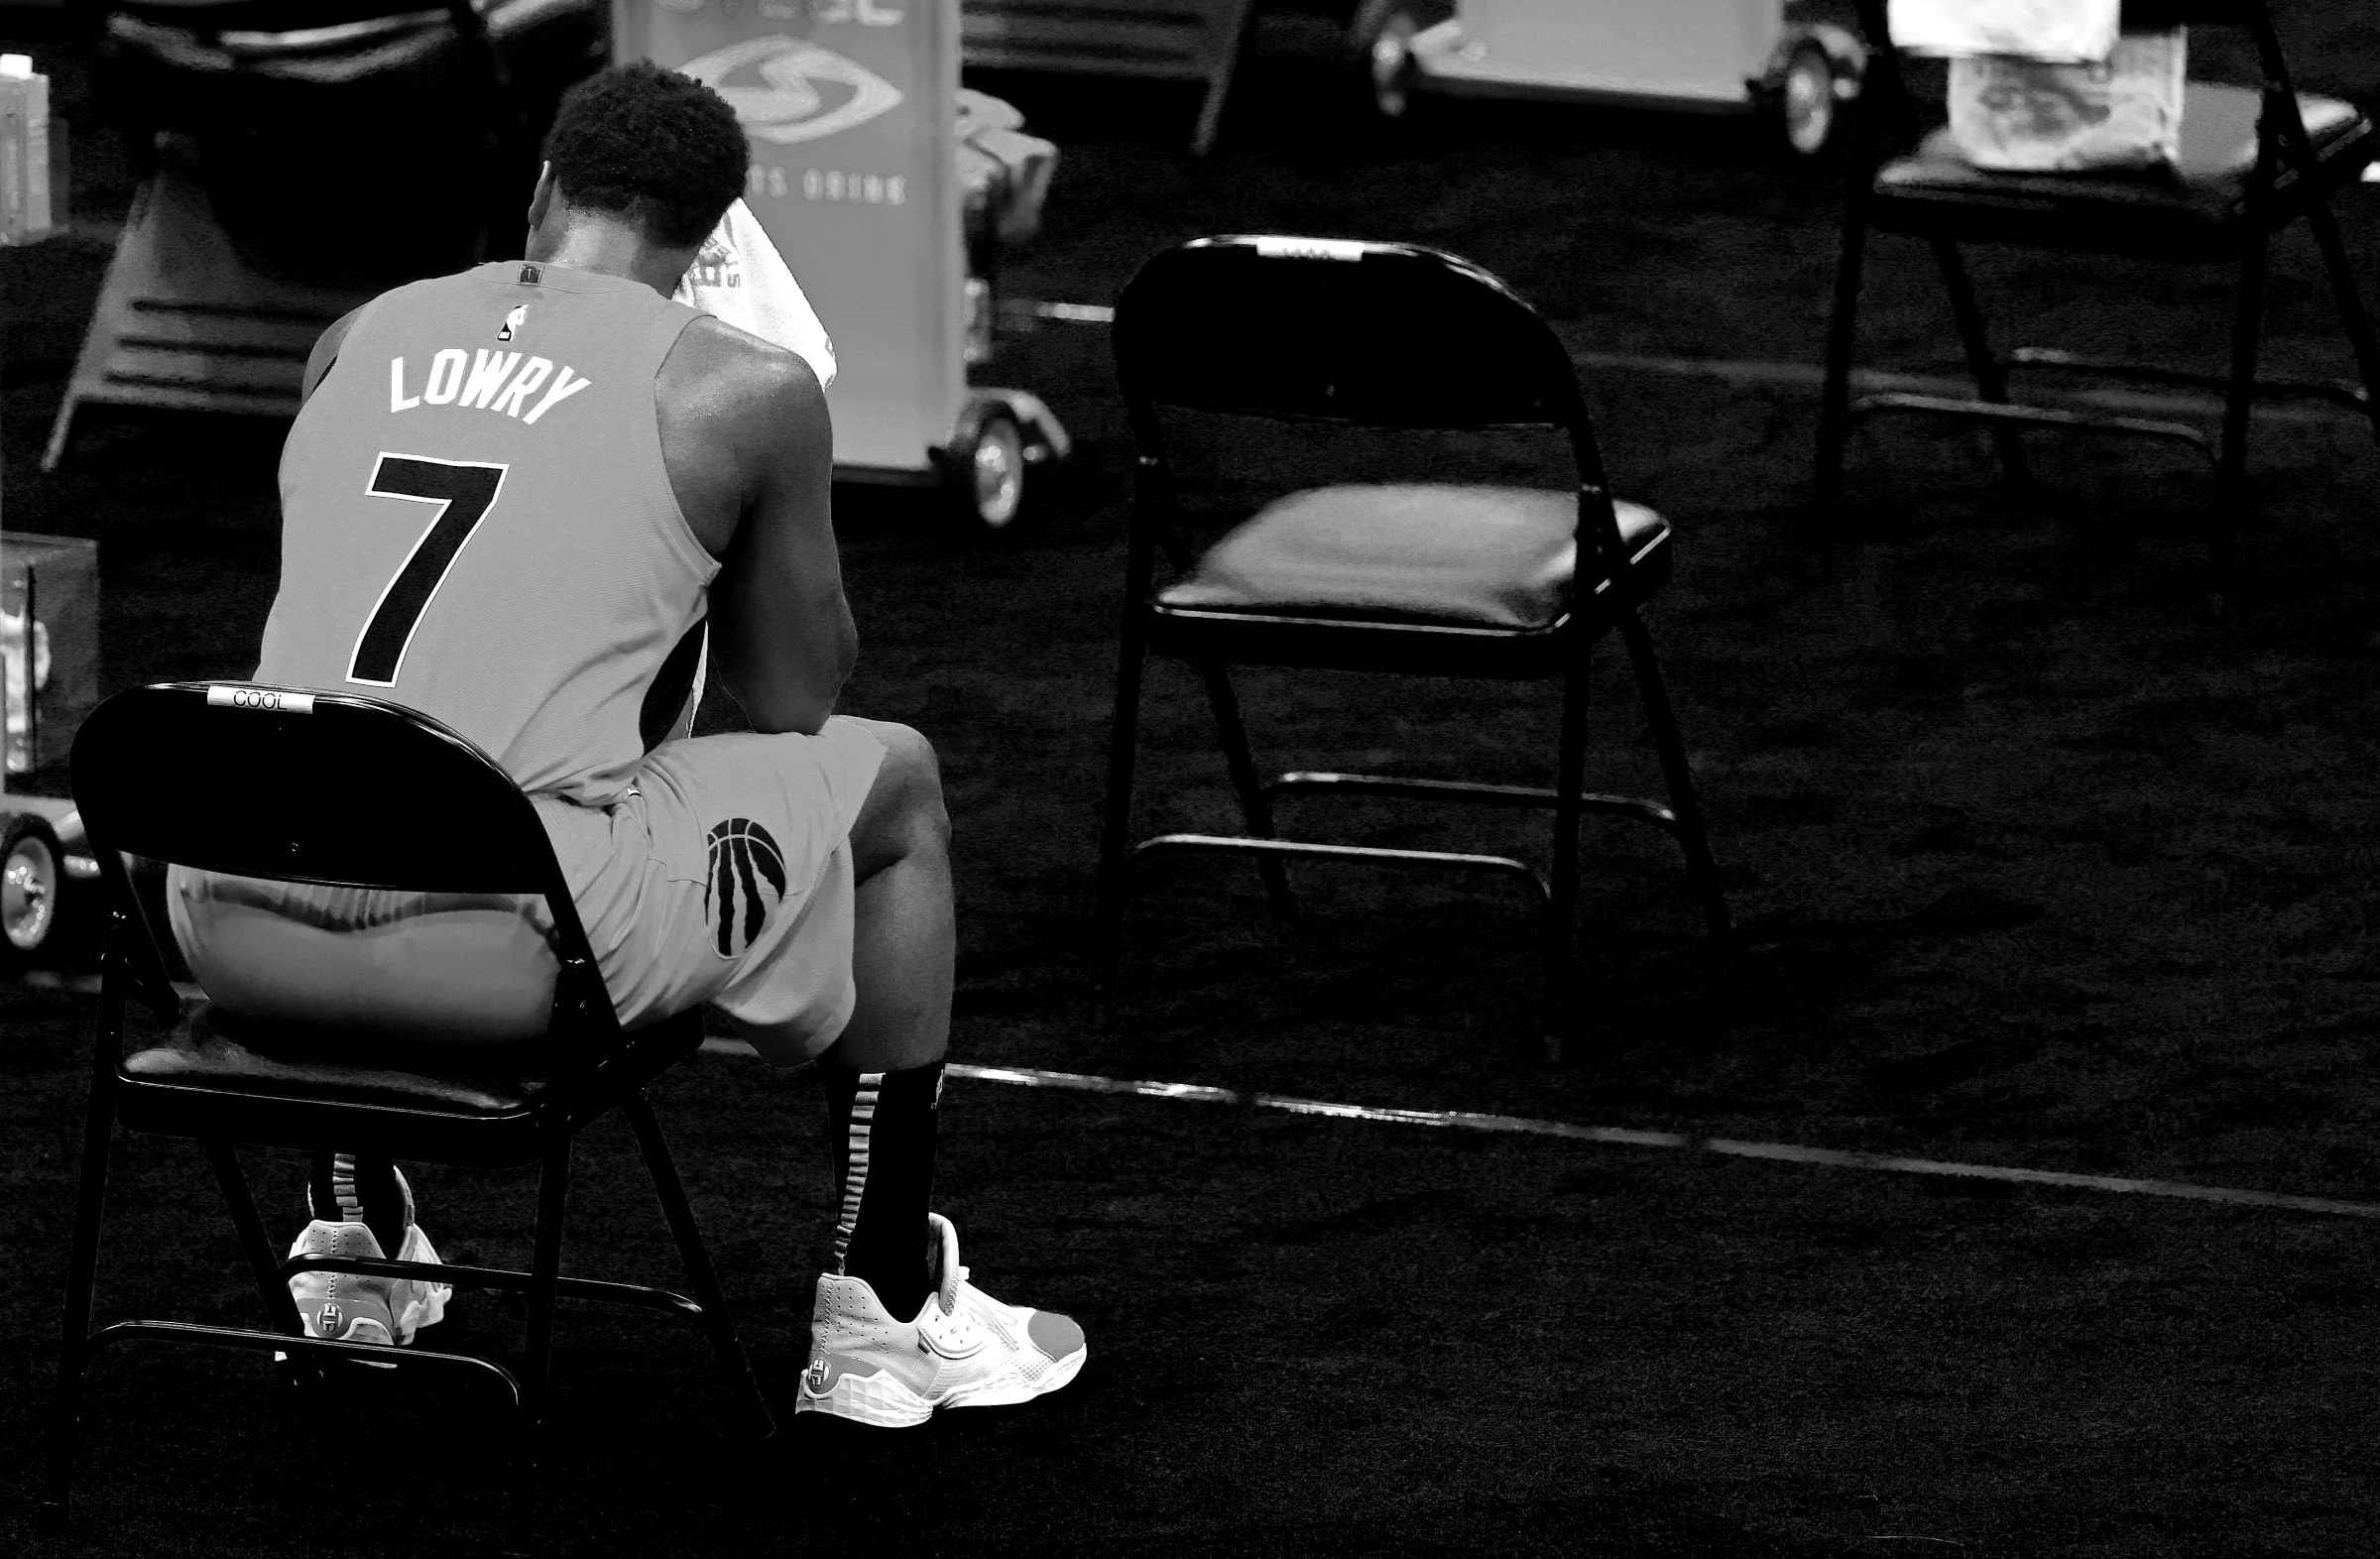 Kyle Lowry sits on the bench in a moody black-and-white image.